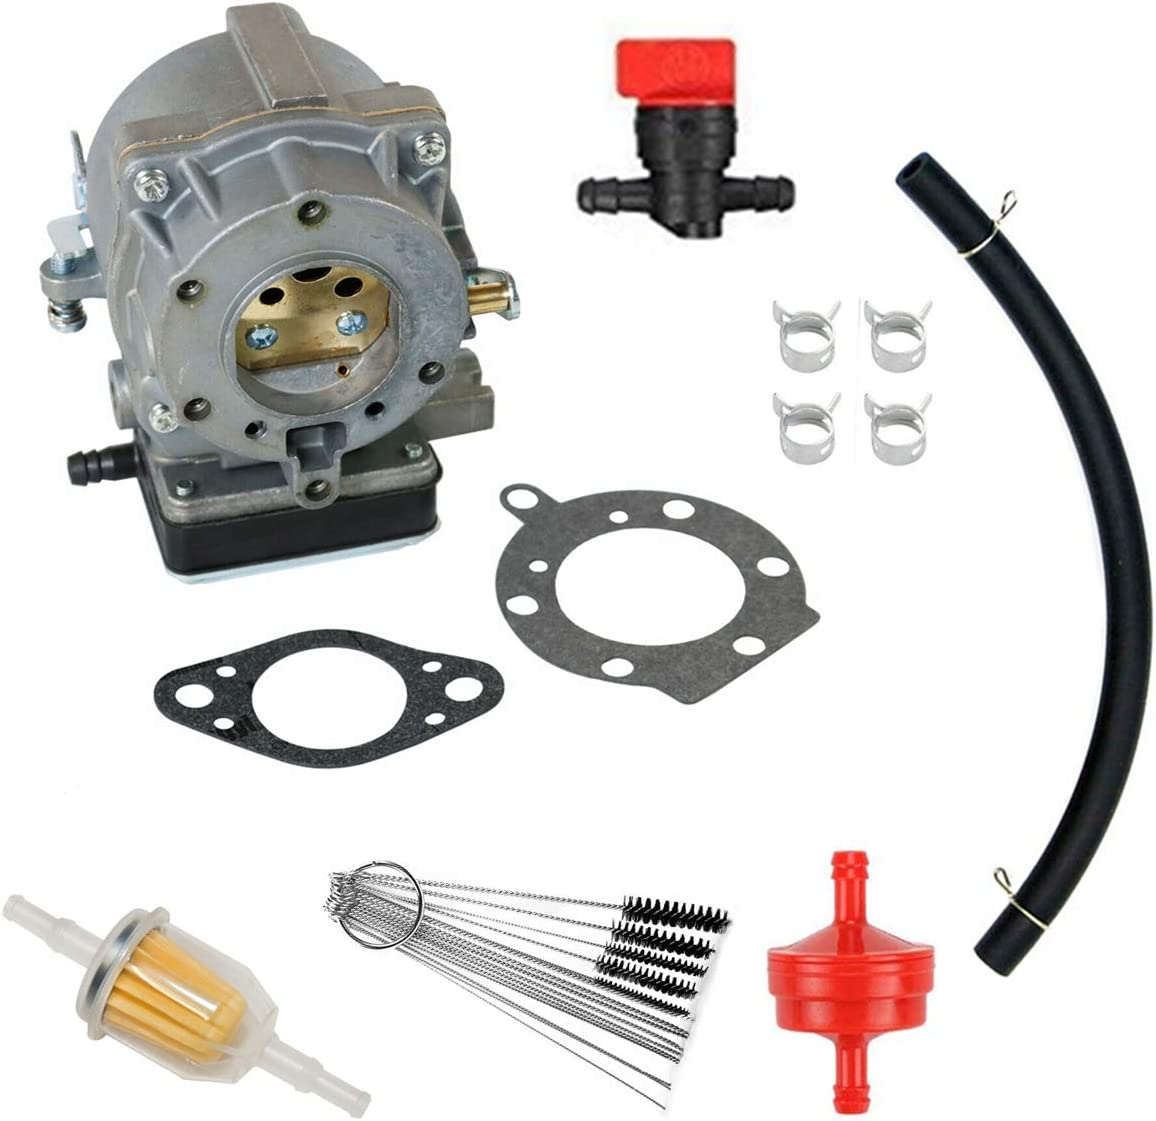 Euros 693480 Carb Finally popular brand with Fuel Line 69 Filter for Max 79% OFF 694026 Fit